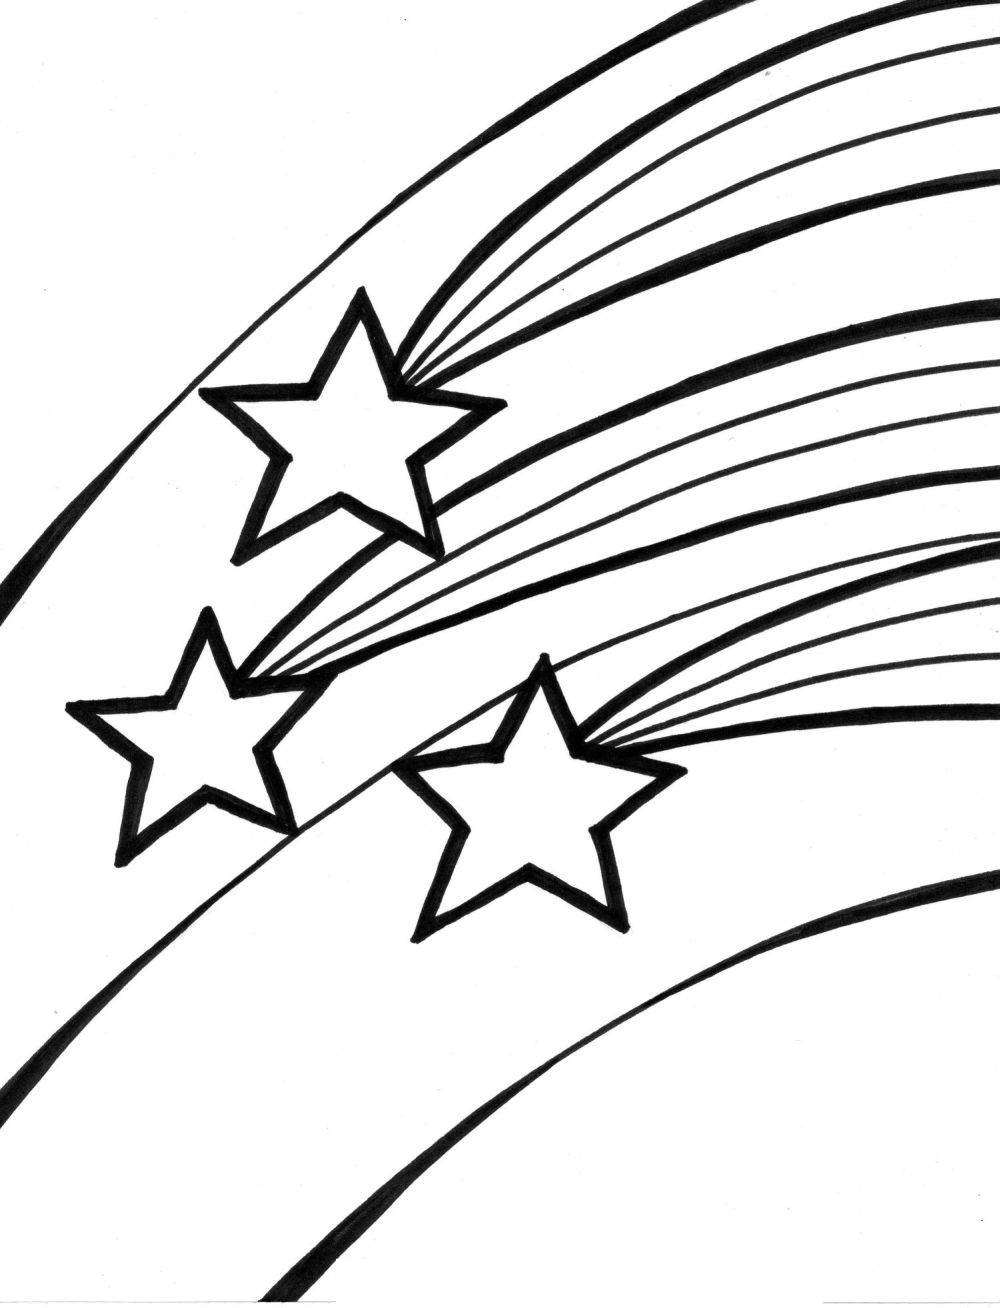 Coloring pages starfish intermediate - Coloring Pages Stars Stars Coloring Pages Photos